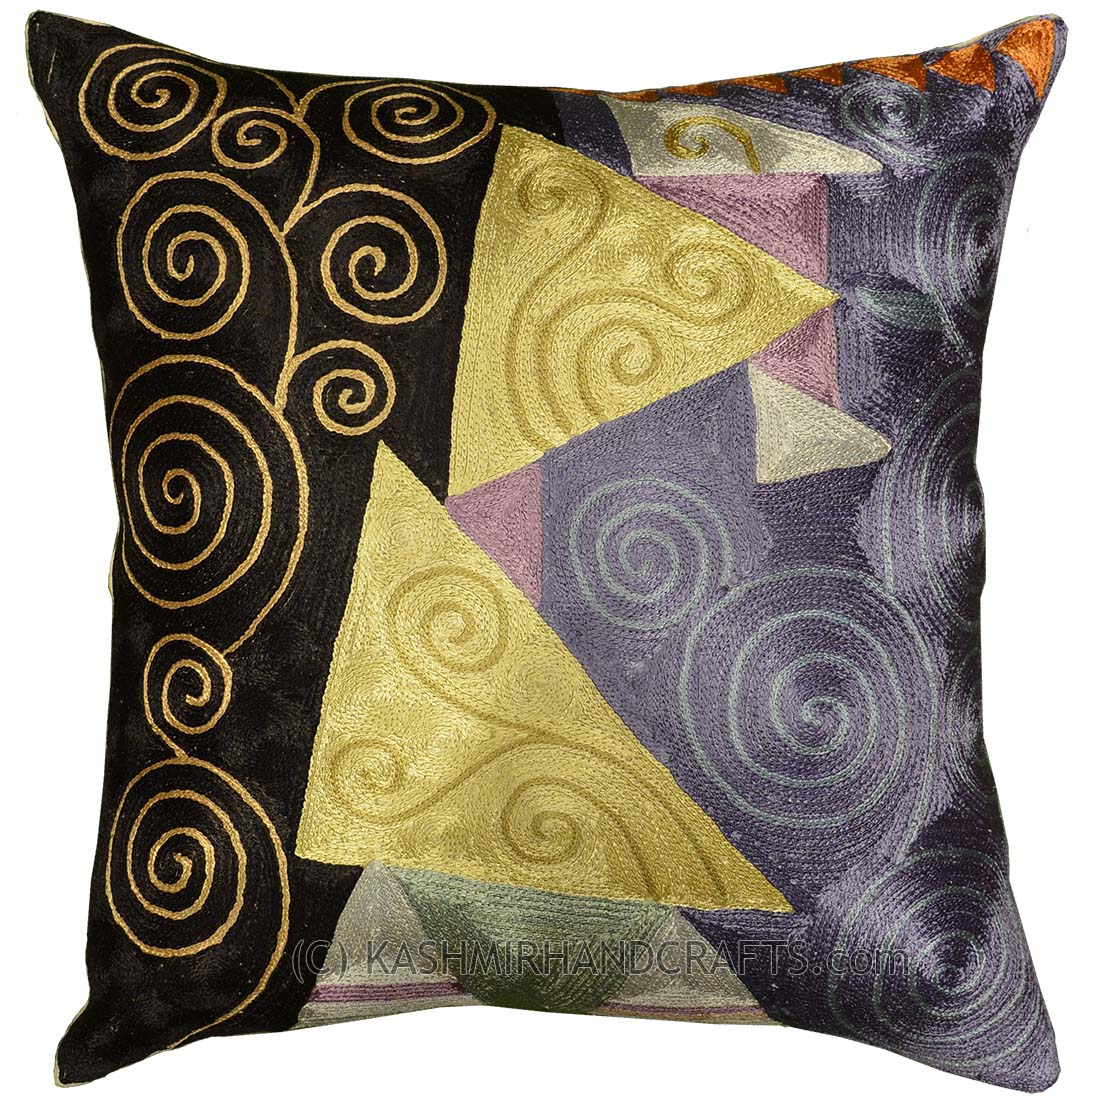 Bed Bath and Beyond Pillow Covers | Decorative Pillow Covers 18x18 | Decorative Pillow Covers